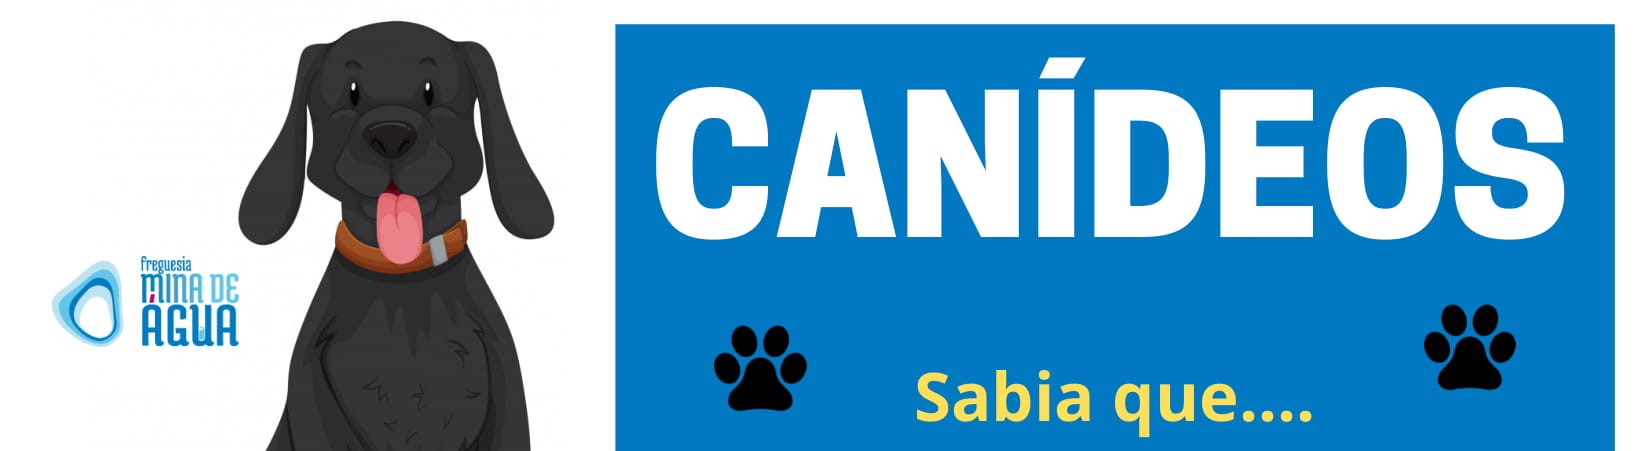 CANIDEOS FINAL-3